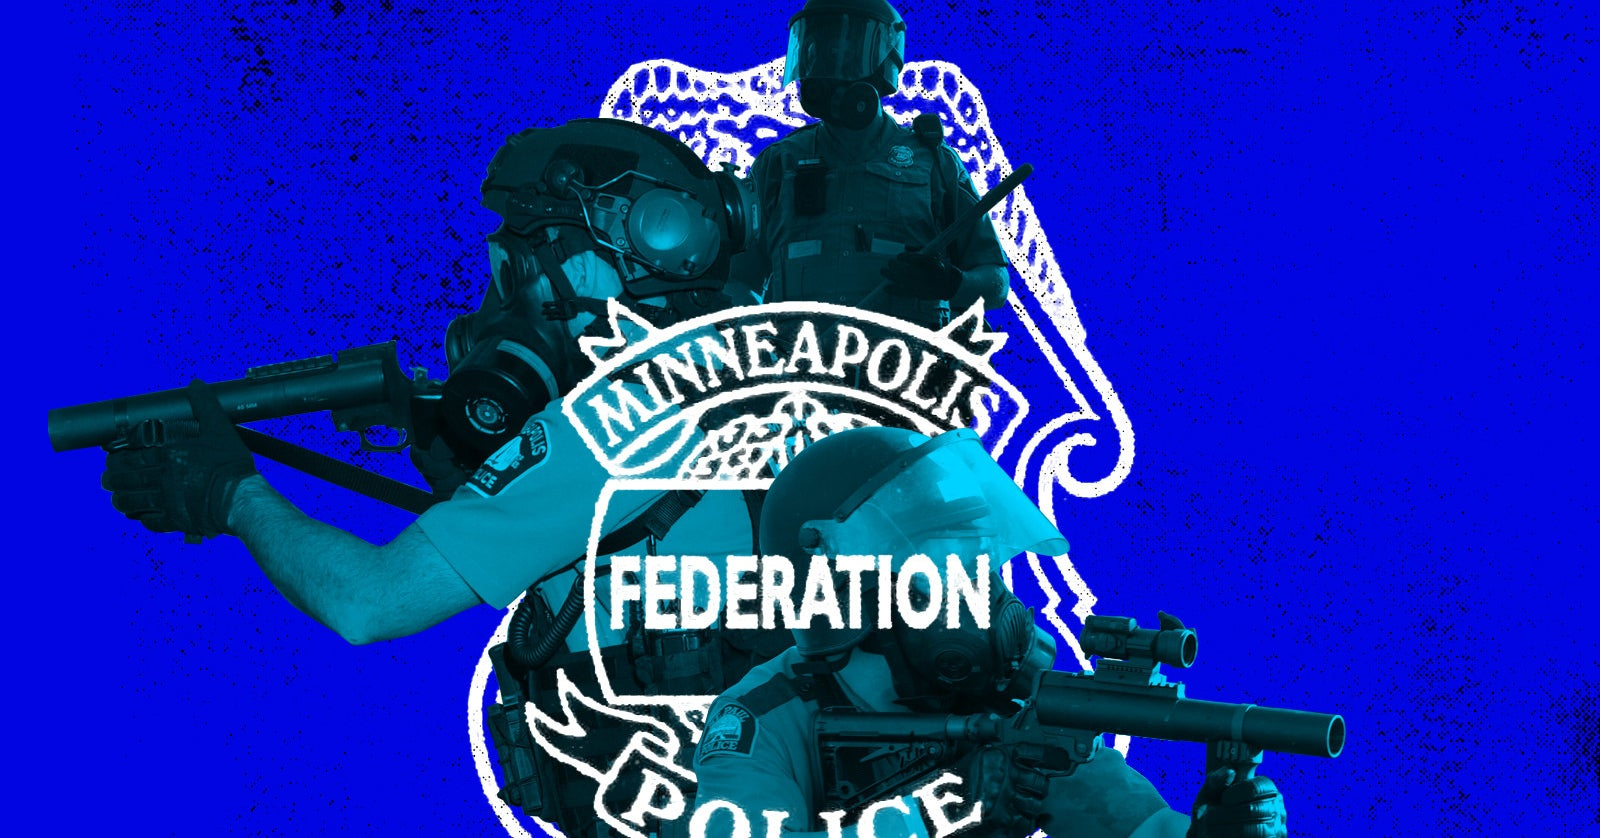 """The Mayor Of Minneapolis Banned """"Warrior Training"""" For The Police. Then The Union Stepped In."""